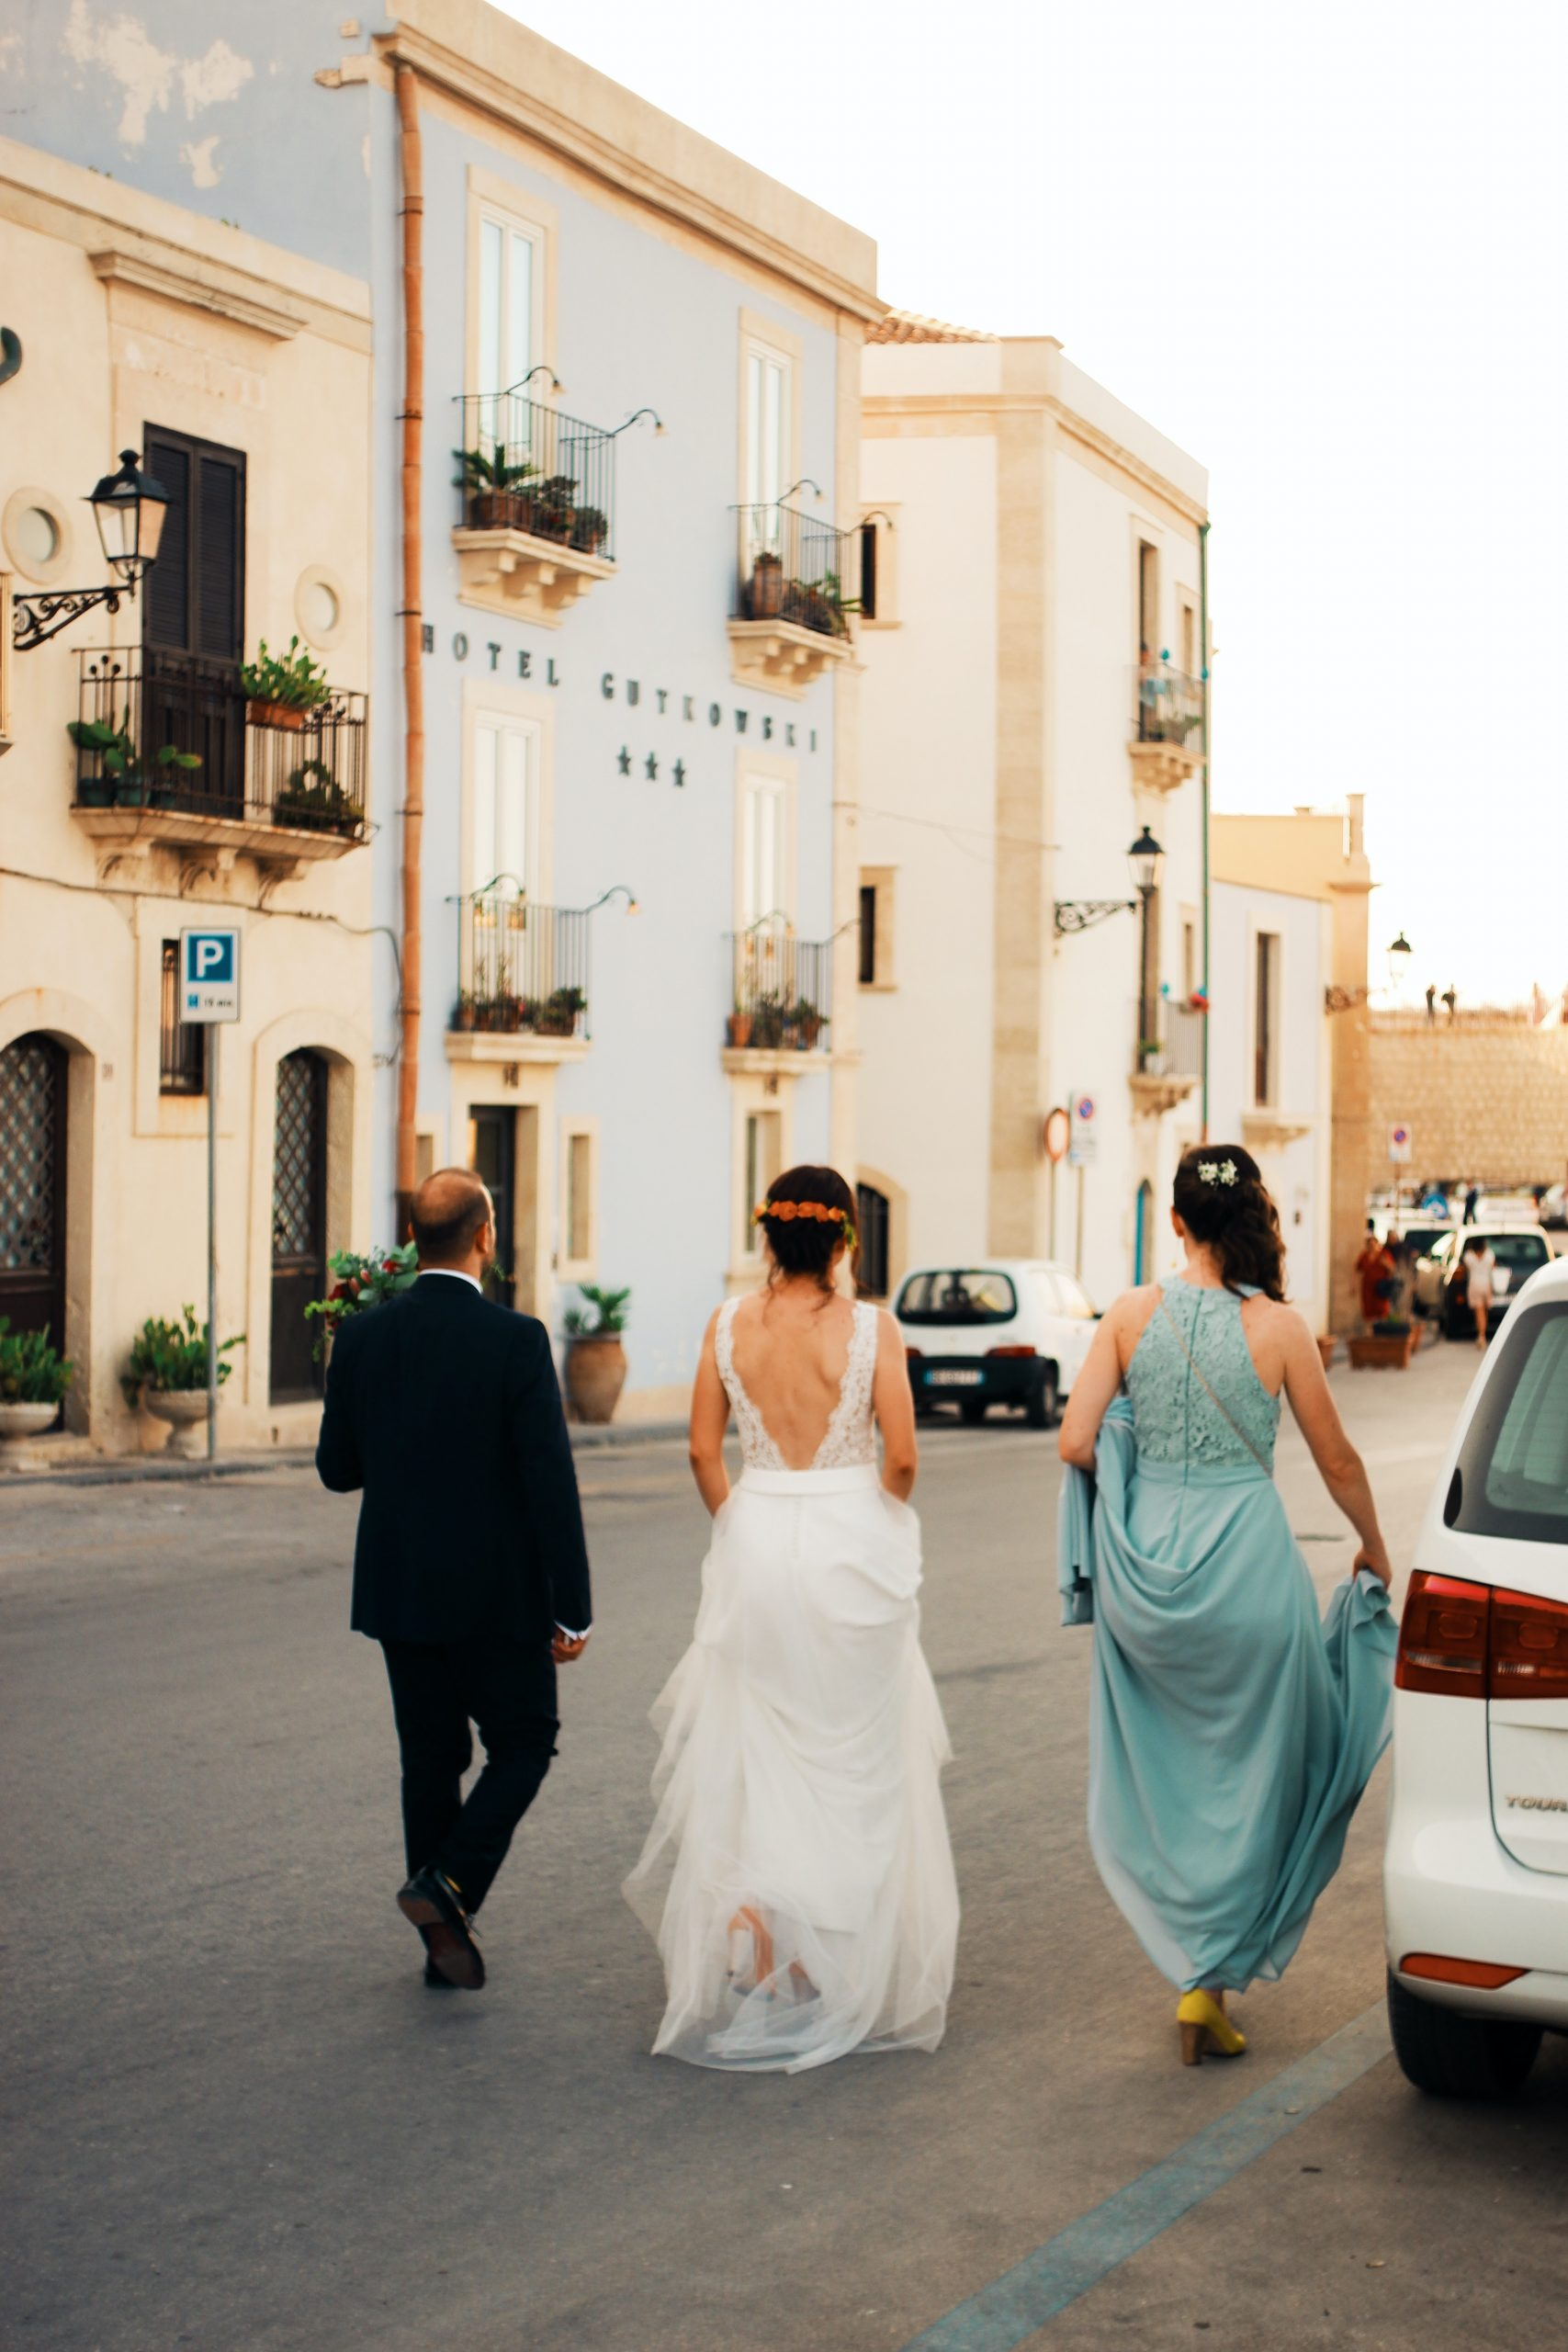 Bride with father and maid of honor walking down street.